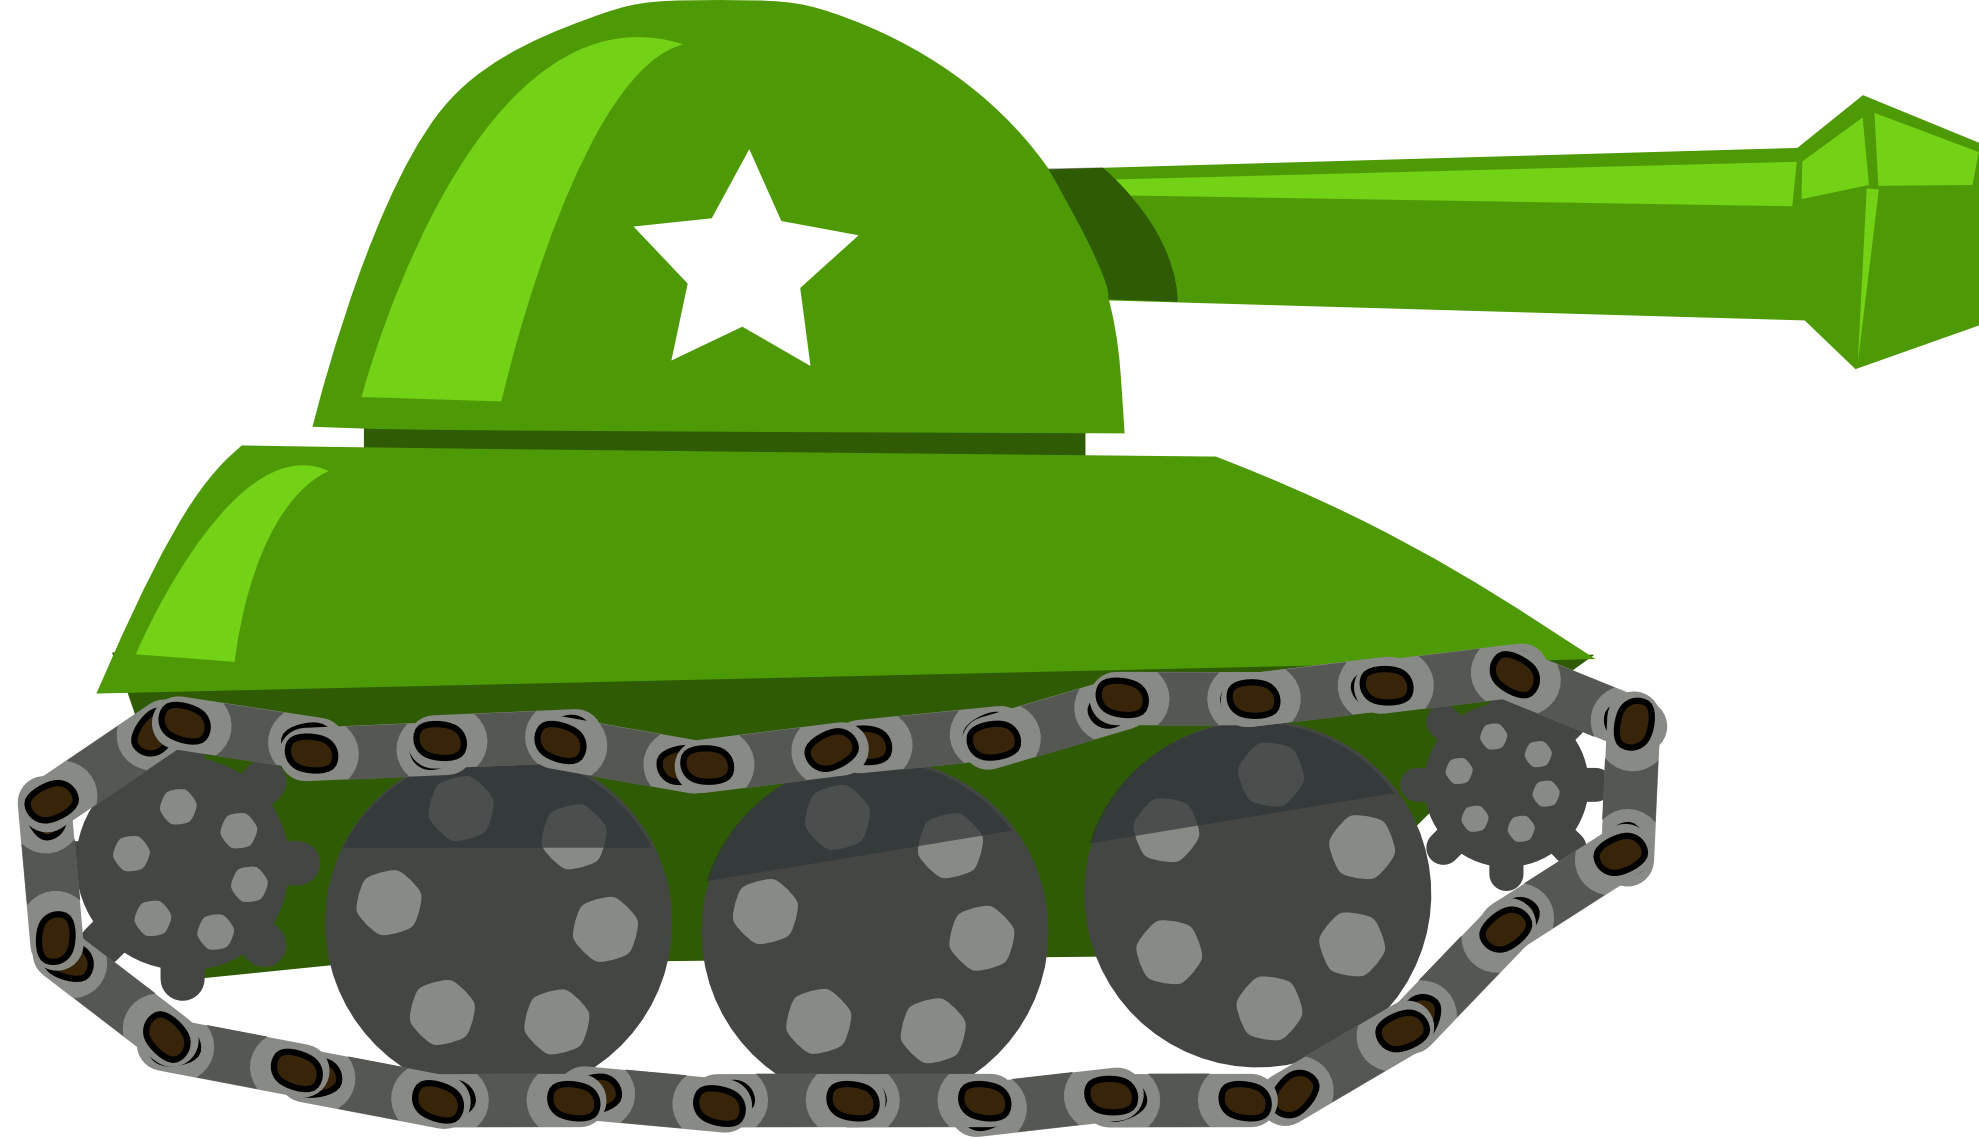 Tank clipart #7, Download drawings